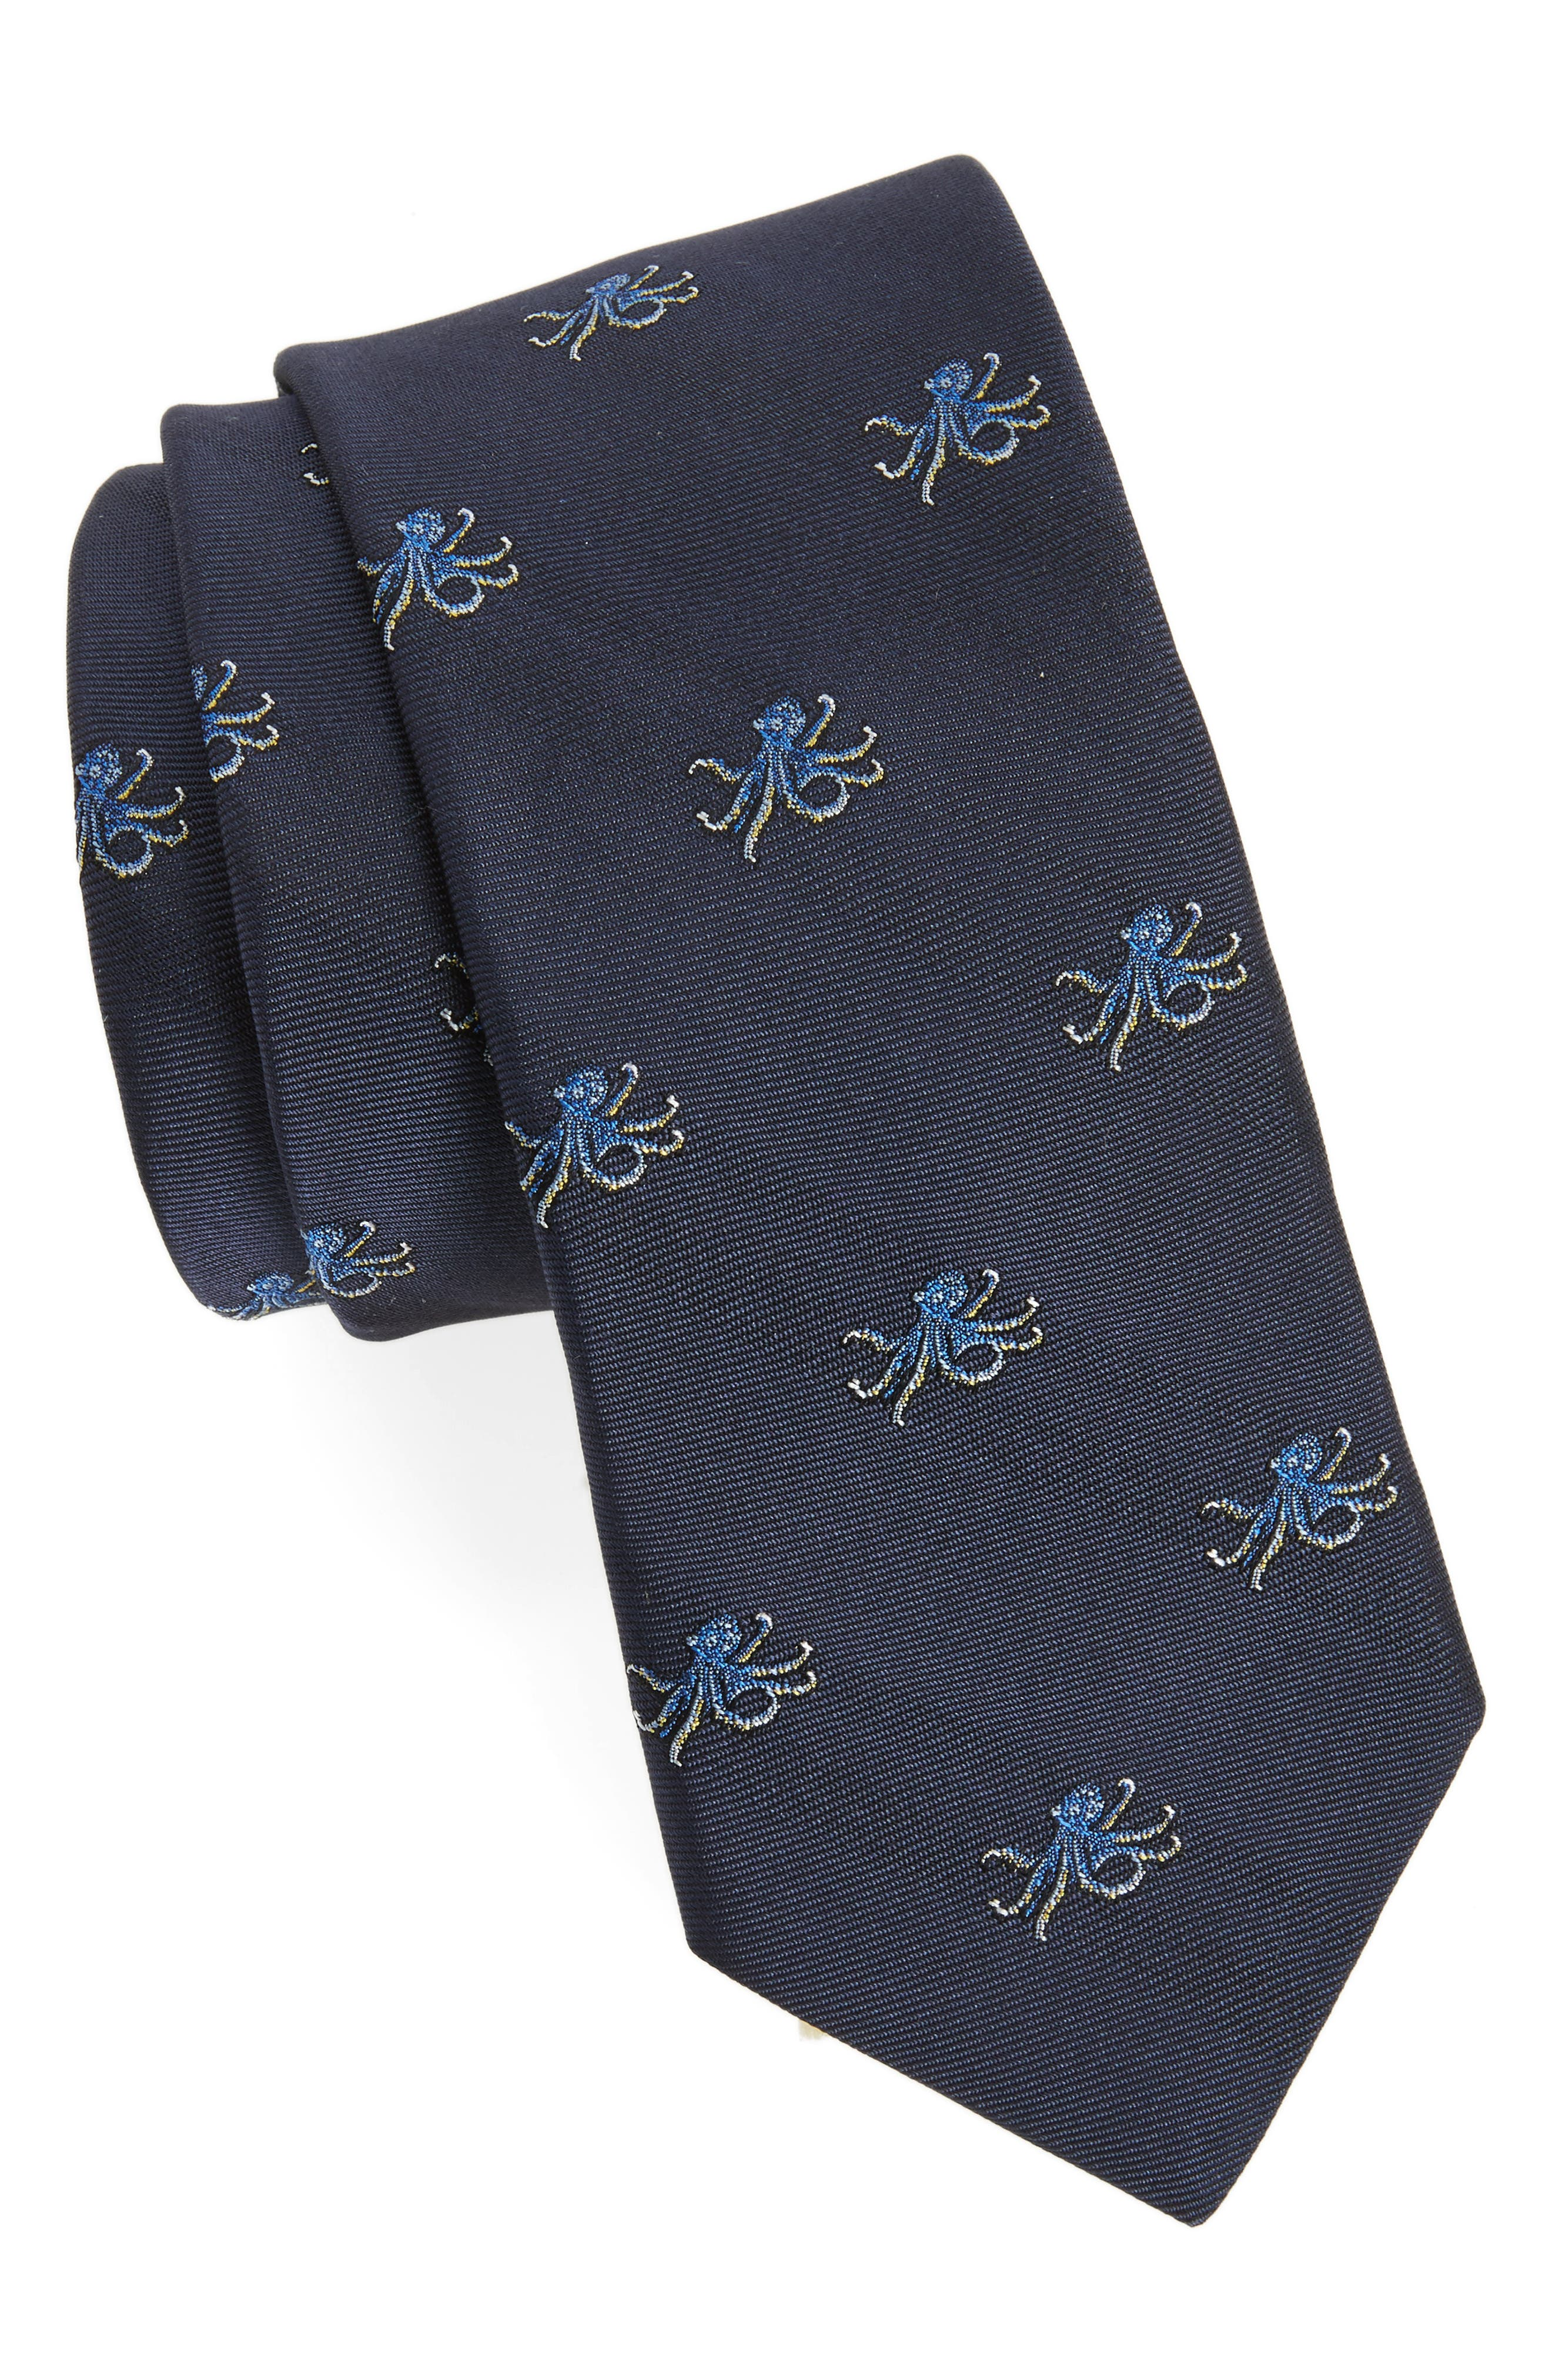 Octopus Silk Tie,                         Main,                         color, 411